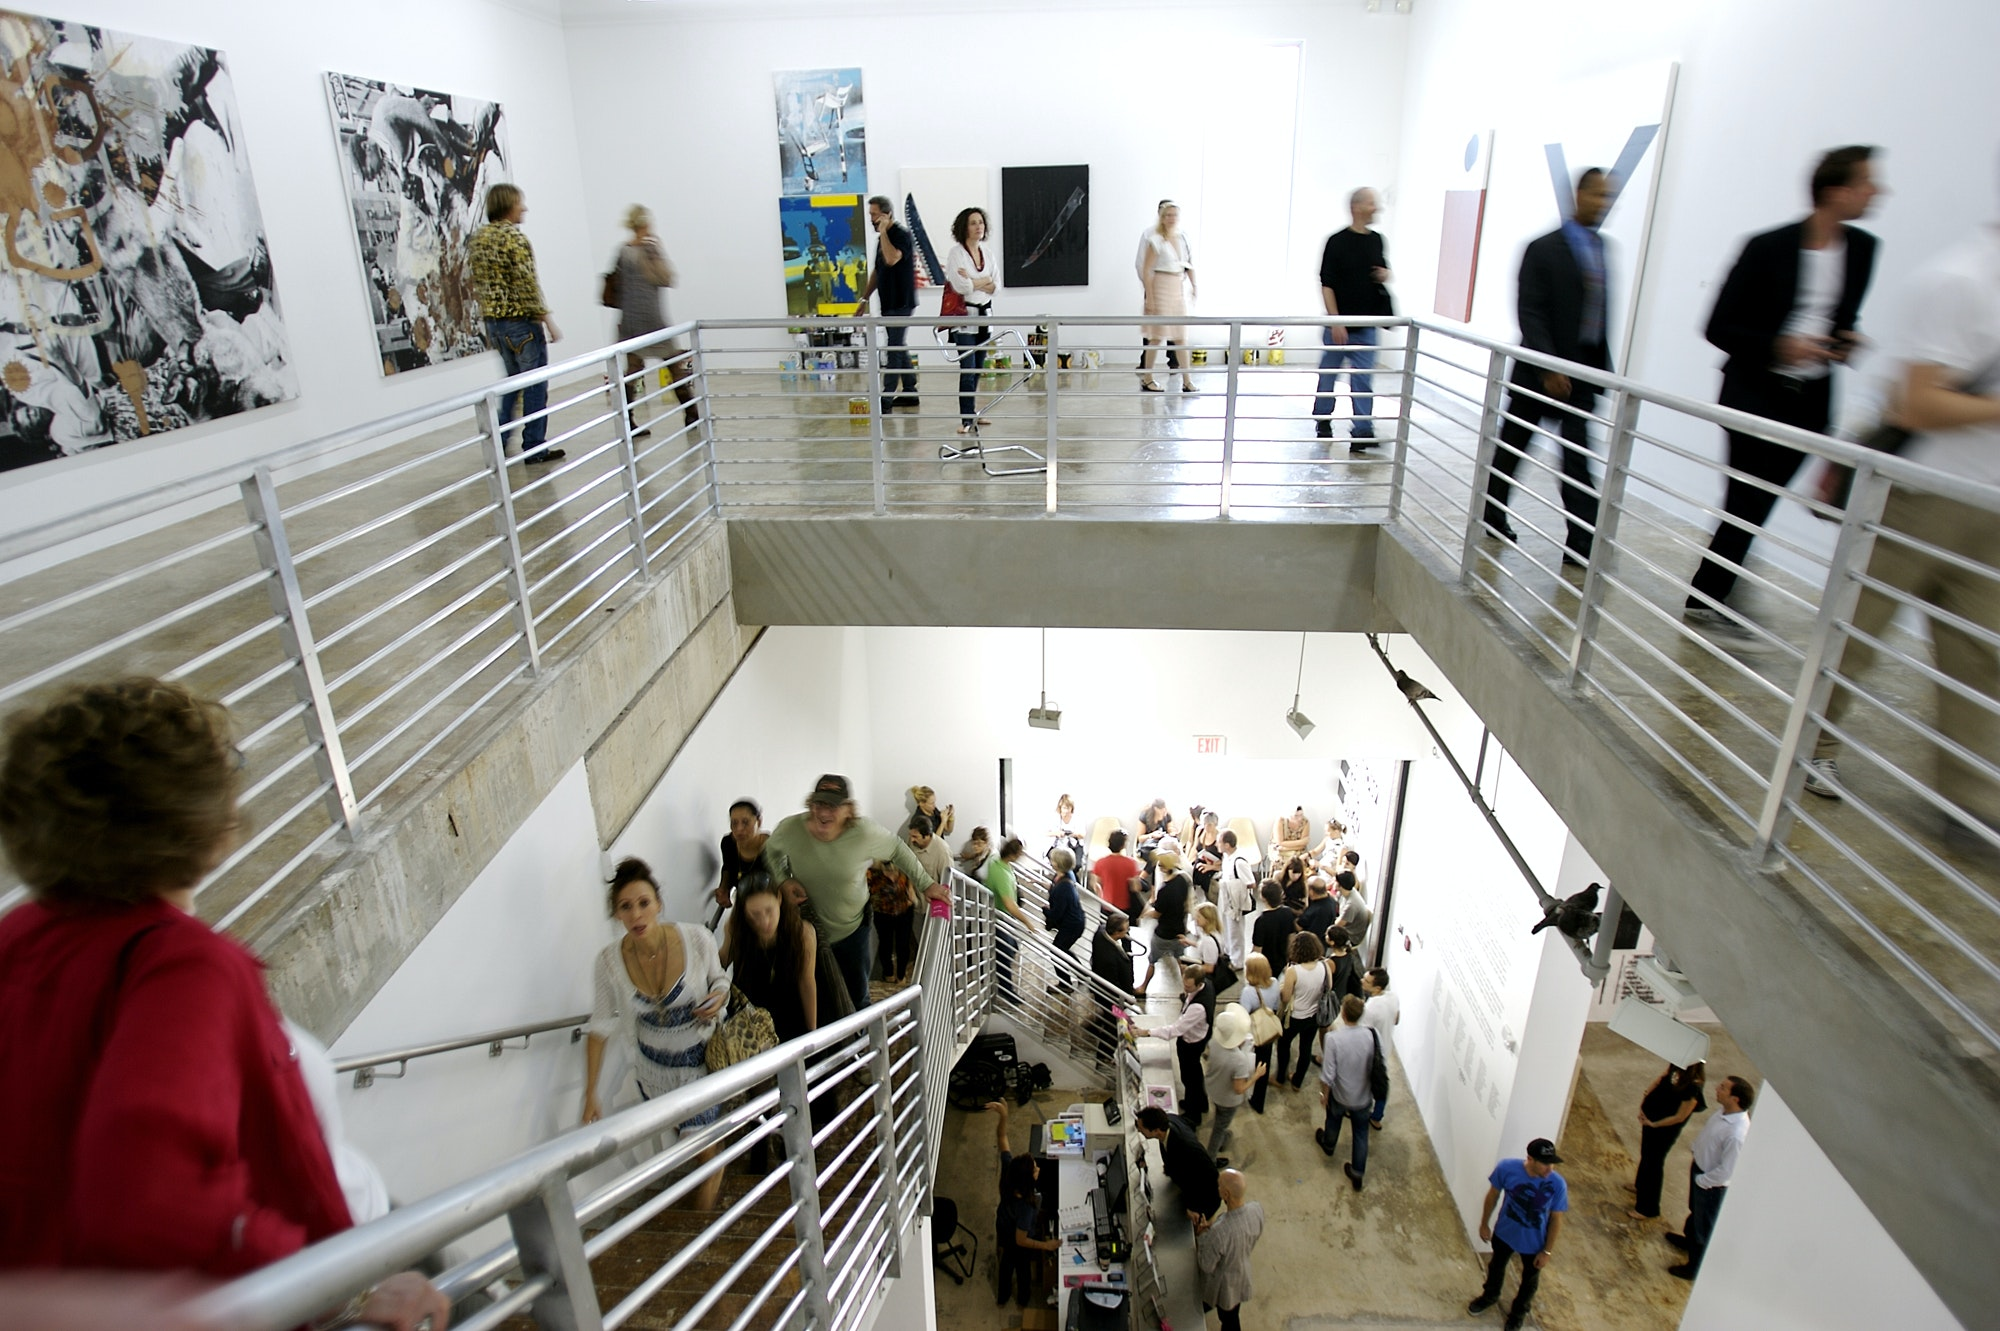 <p><em>Visitors at the Rubell Family Collection, receiving $500,000 from Knight to develop ambitious visual arts programming and support the careers of emerging artists and curators through curatorial internships and artist residencies. Credit: Chi Lam.</em></p>